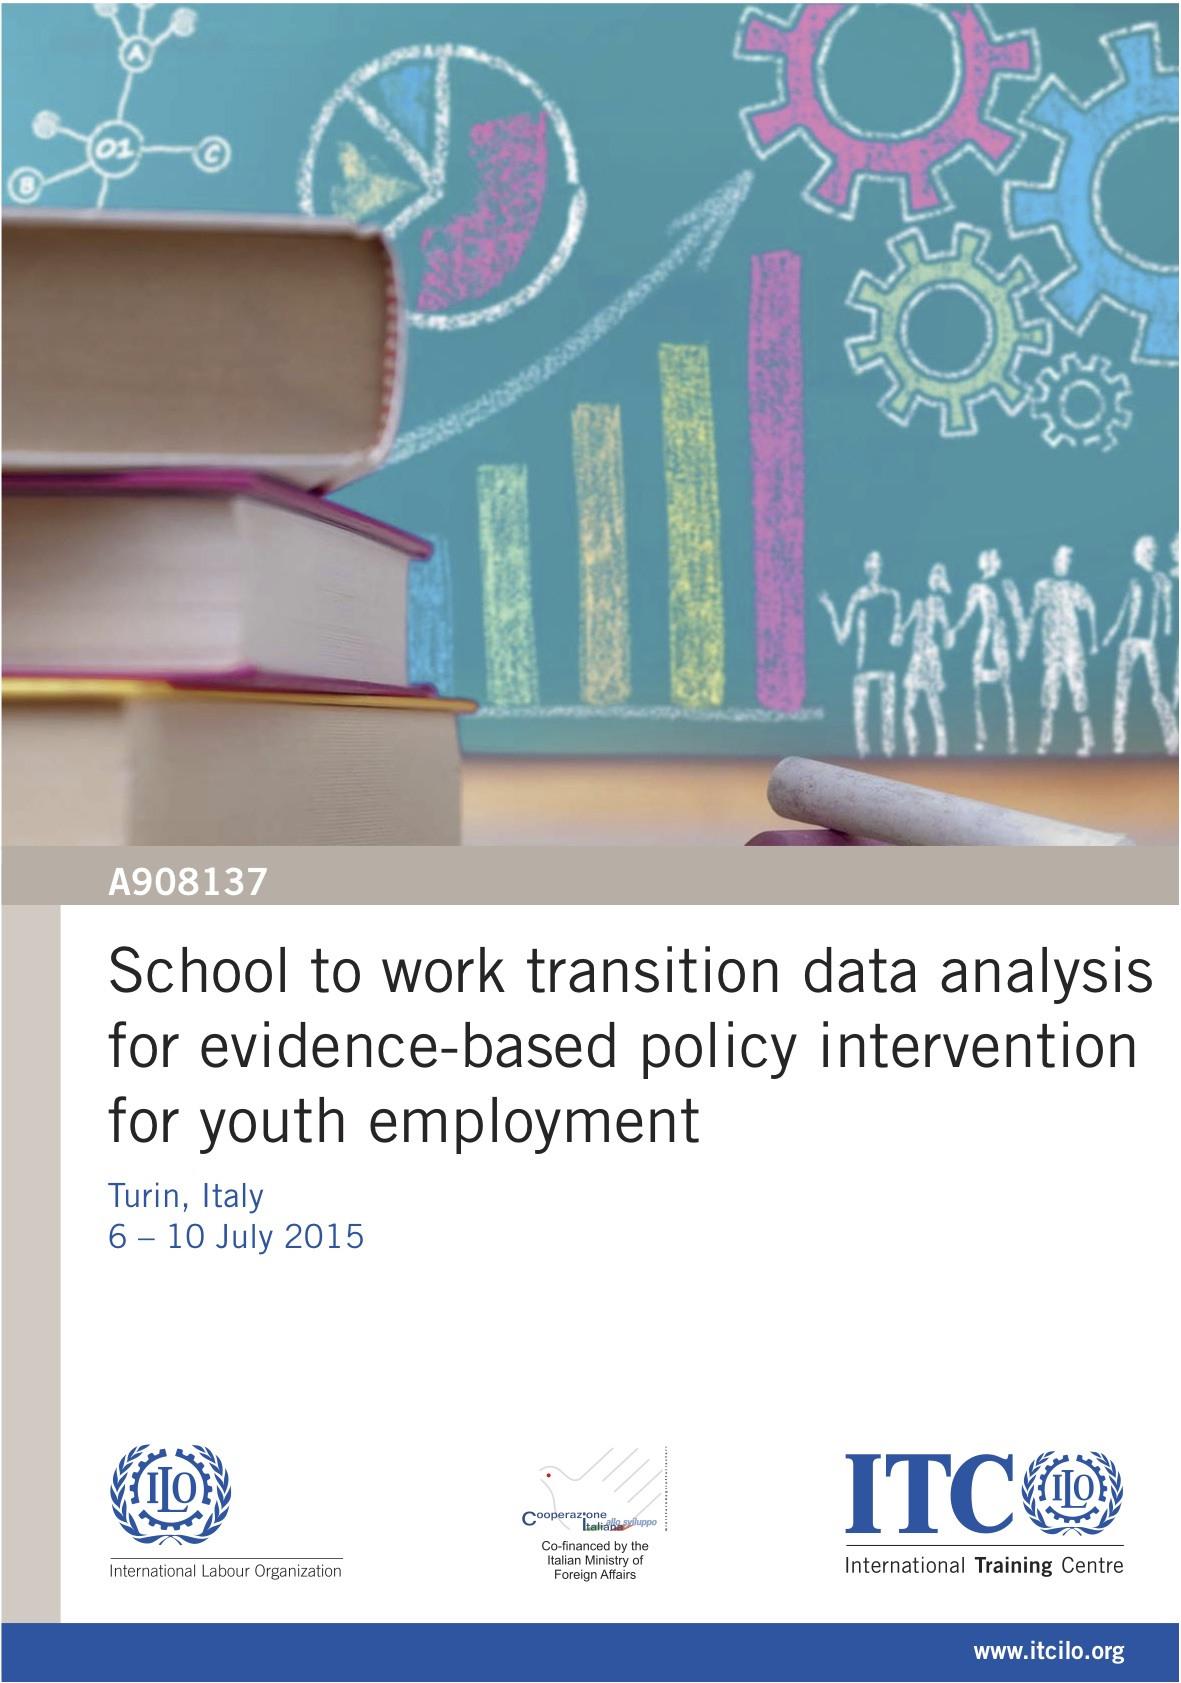 School to work transition data analysis for evidence-based policy intervention for youth employment (EN/FR)